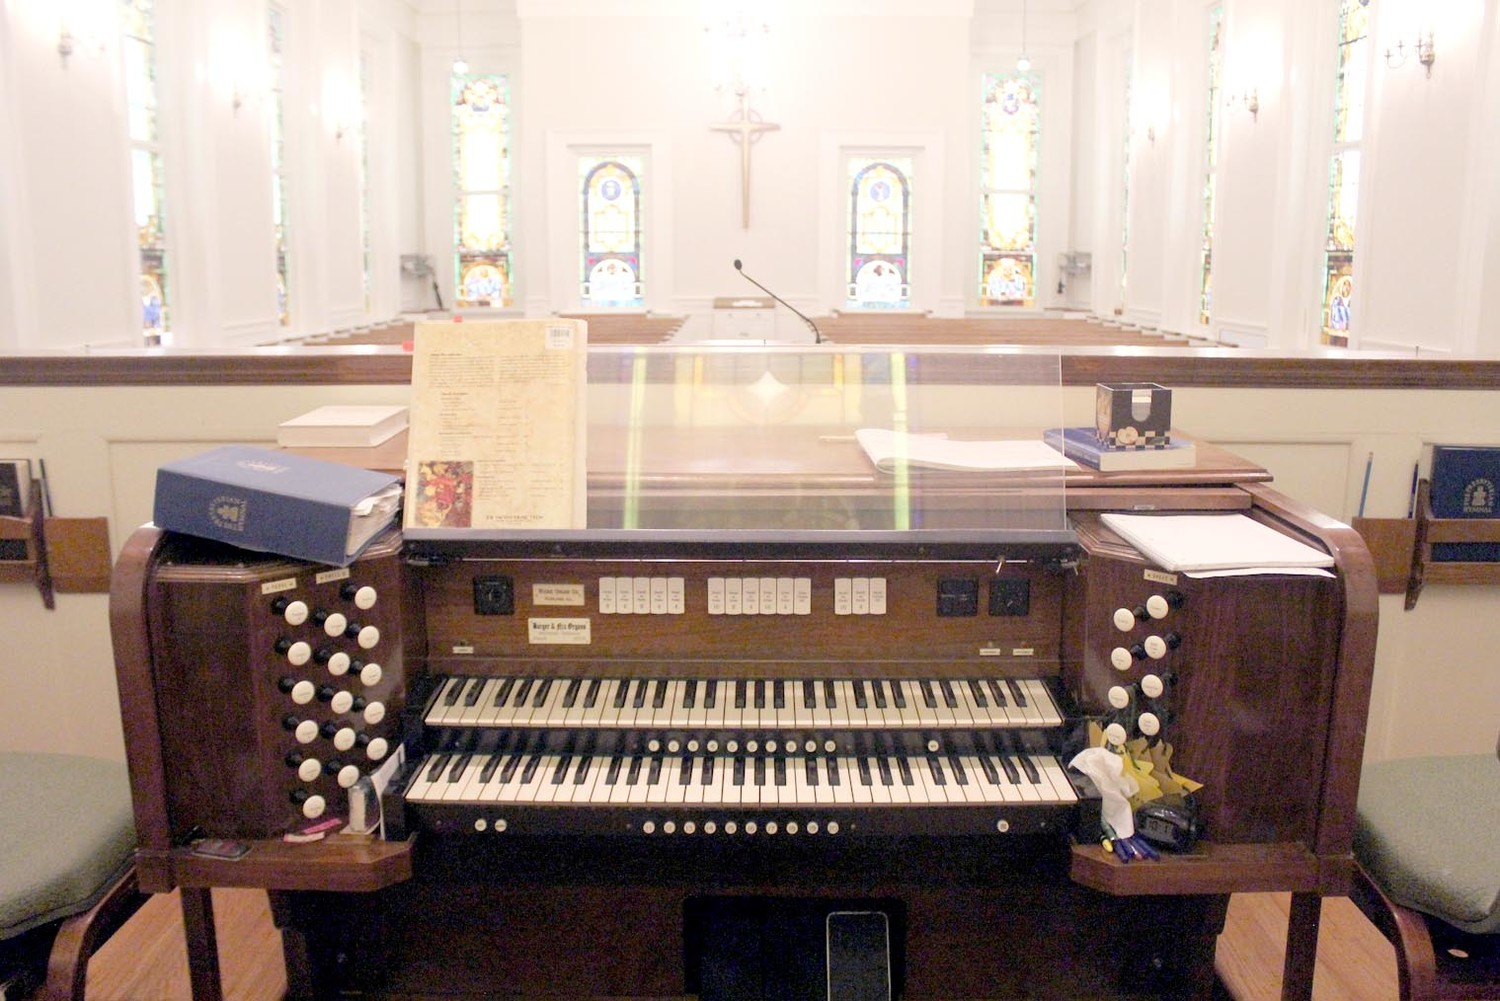 The beautiful organ was redone in 2004. It is located in the choir area.